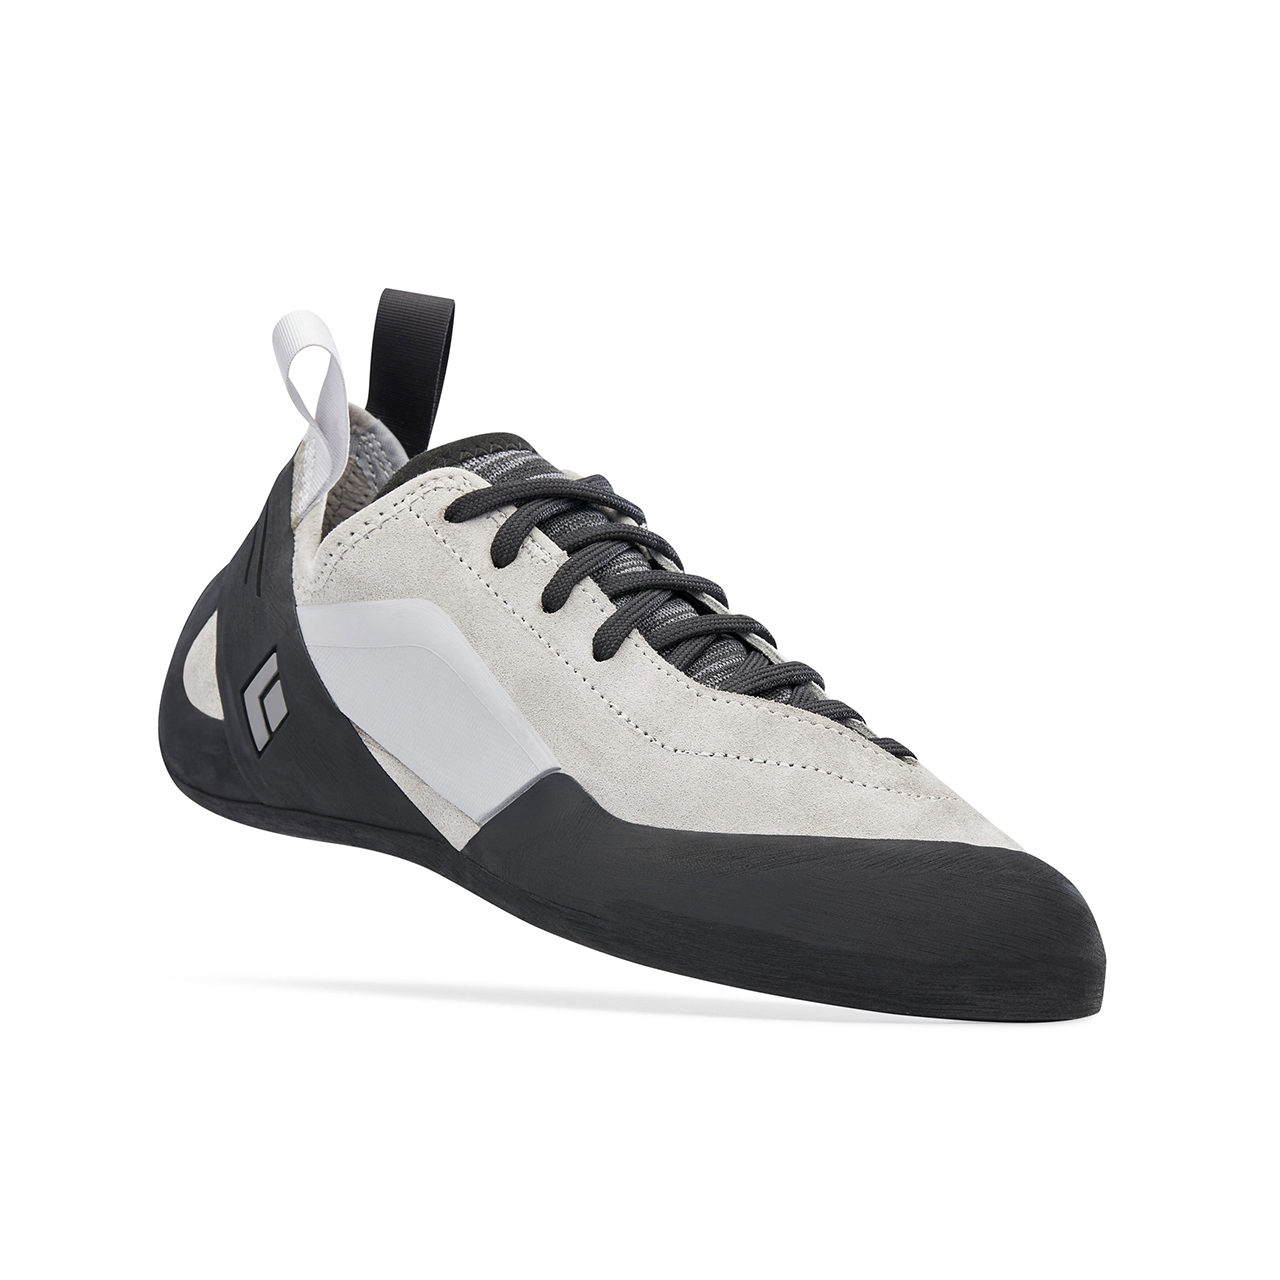 Black Shoe With Climing Covers